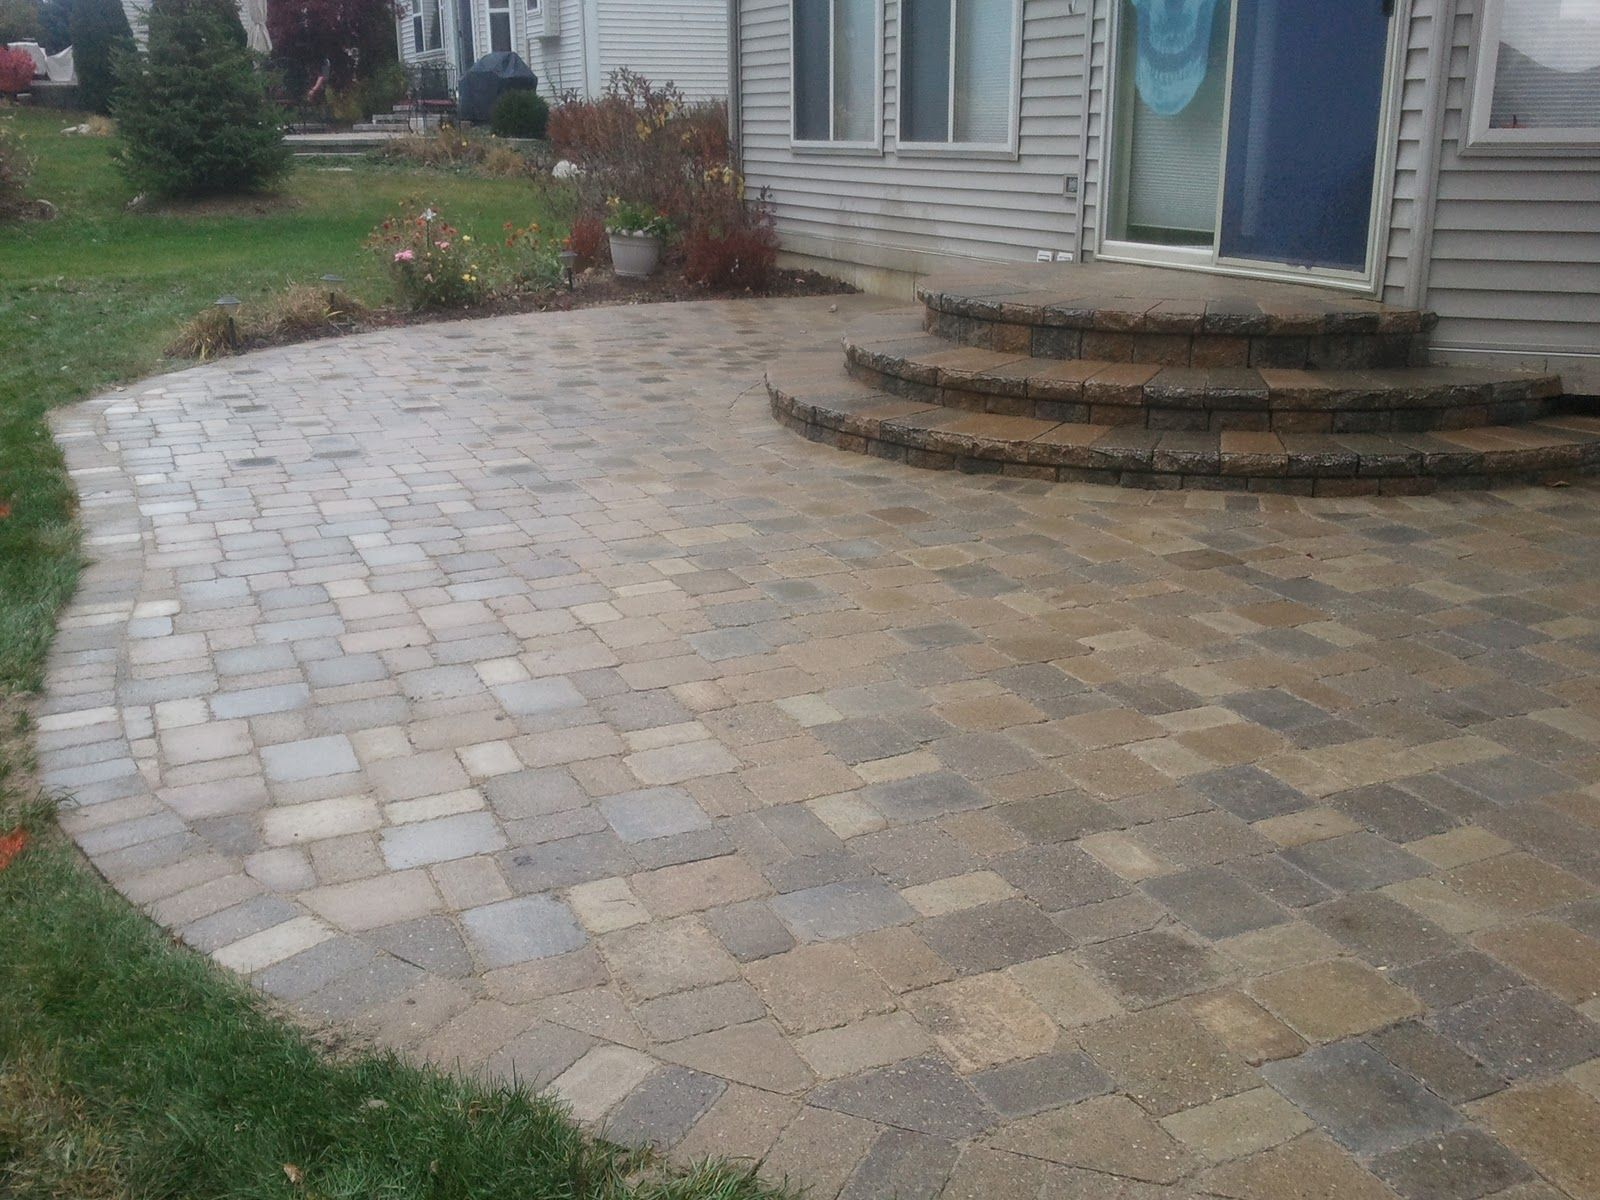 the best stone patio ideas | stone patios, patios and backyard - Brick Stone Patio Designs